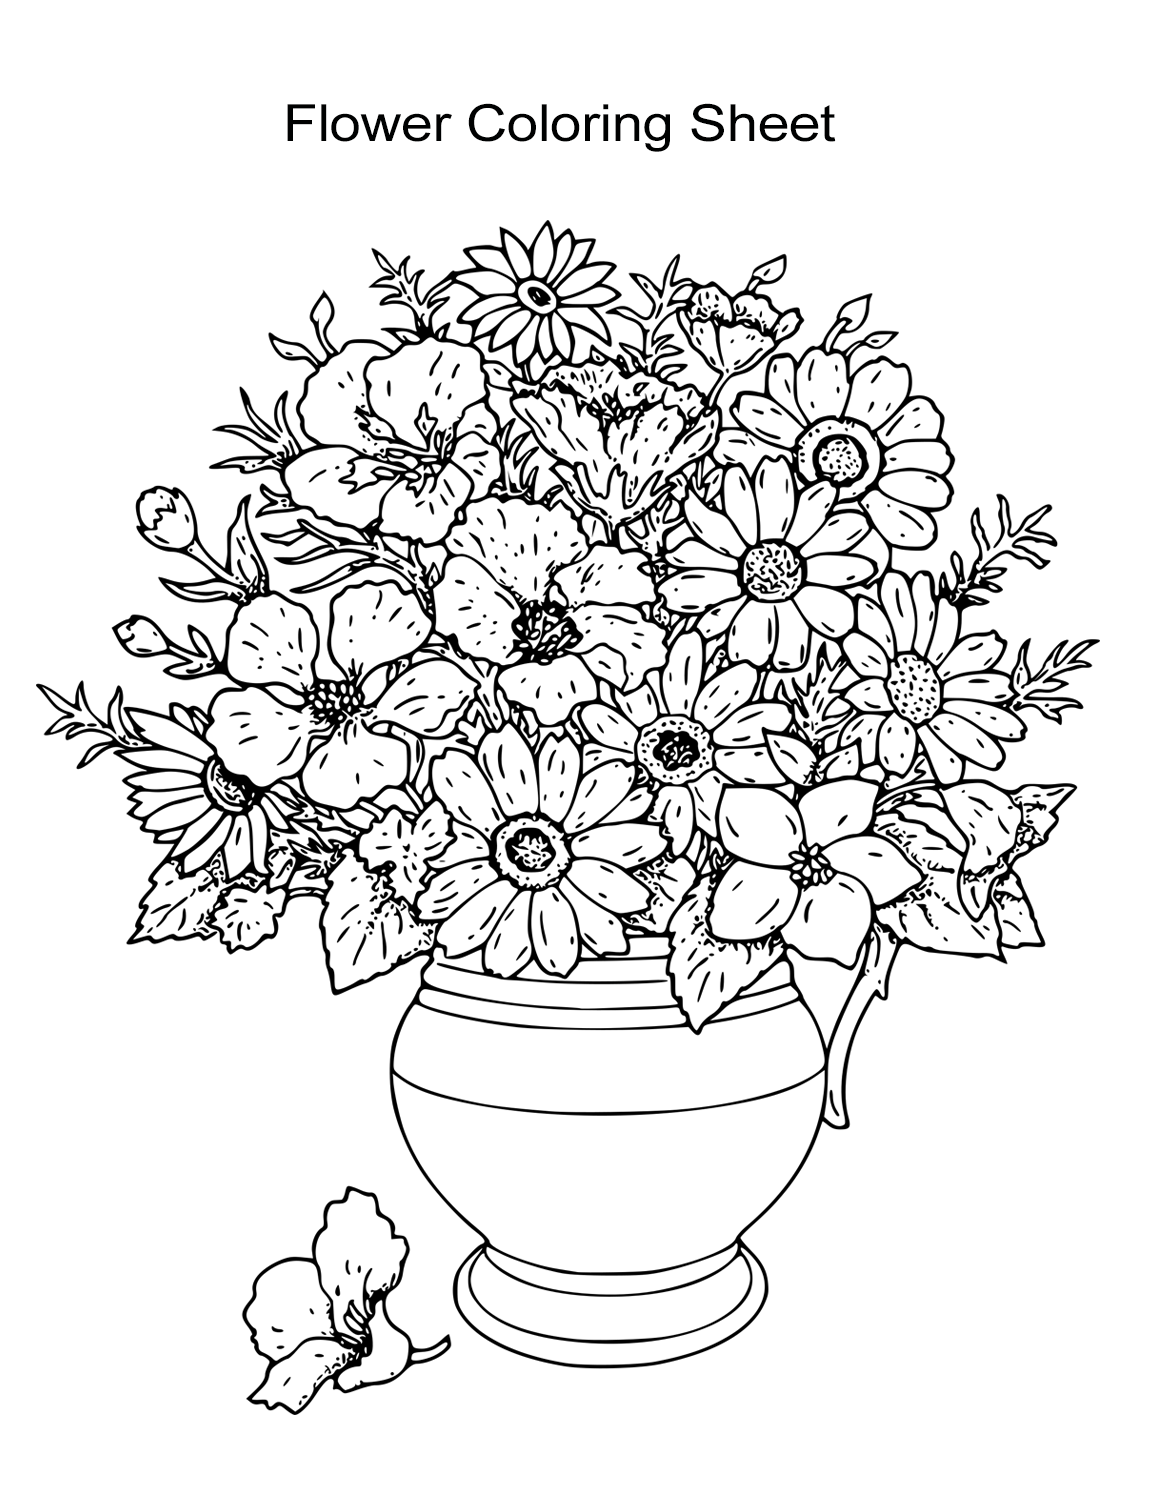 pictures of flowers to color free printables flowers to print flowers kids coloring pages flowers pictures color of to free printables